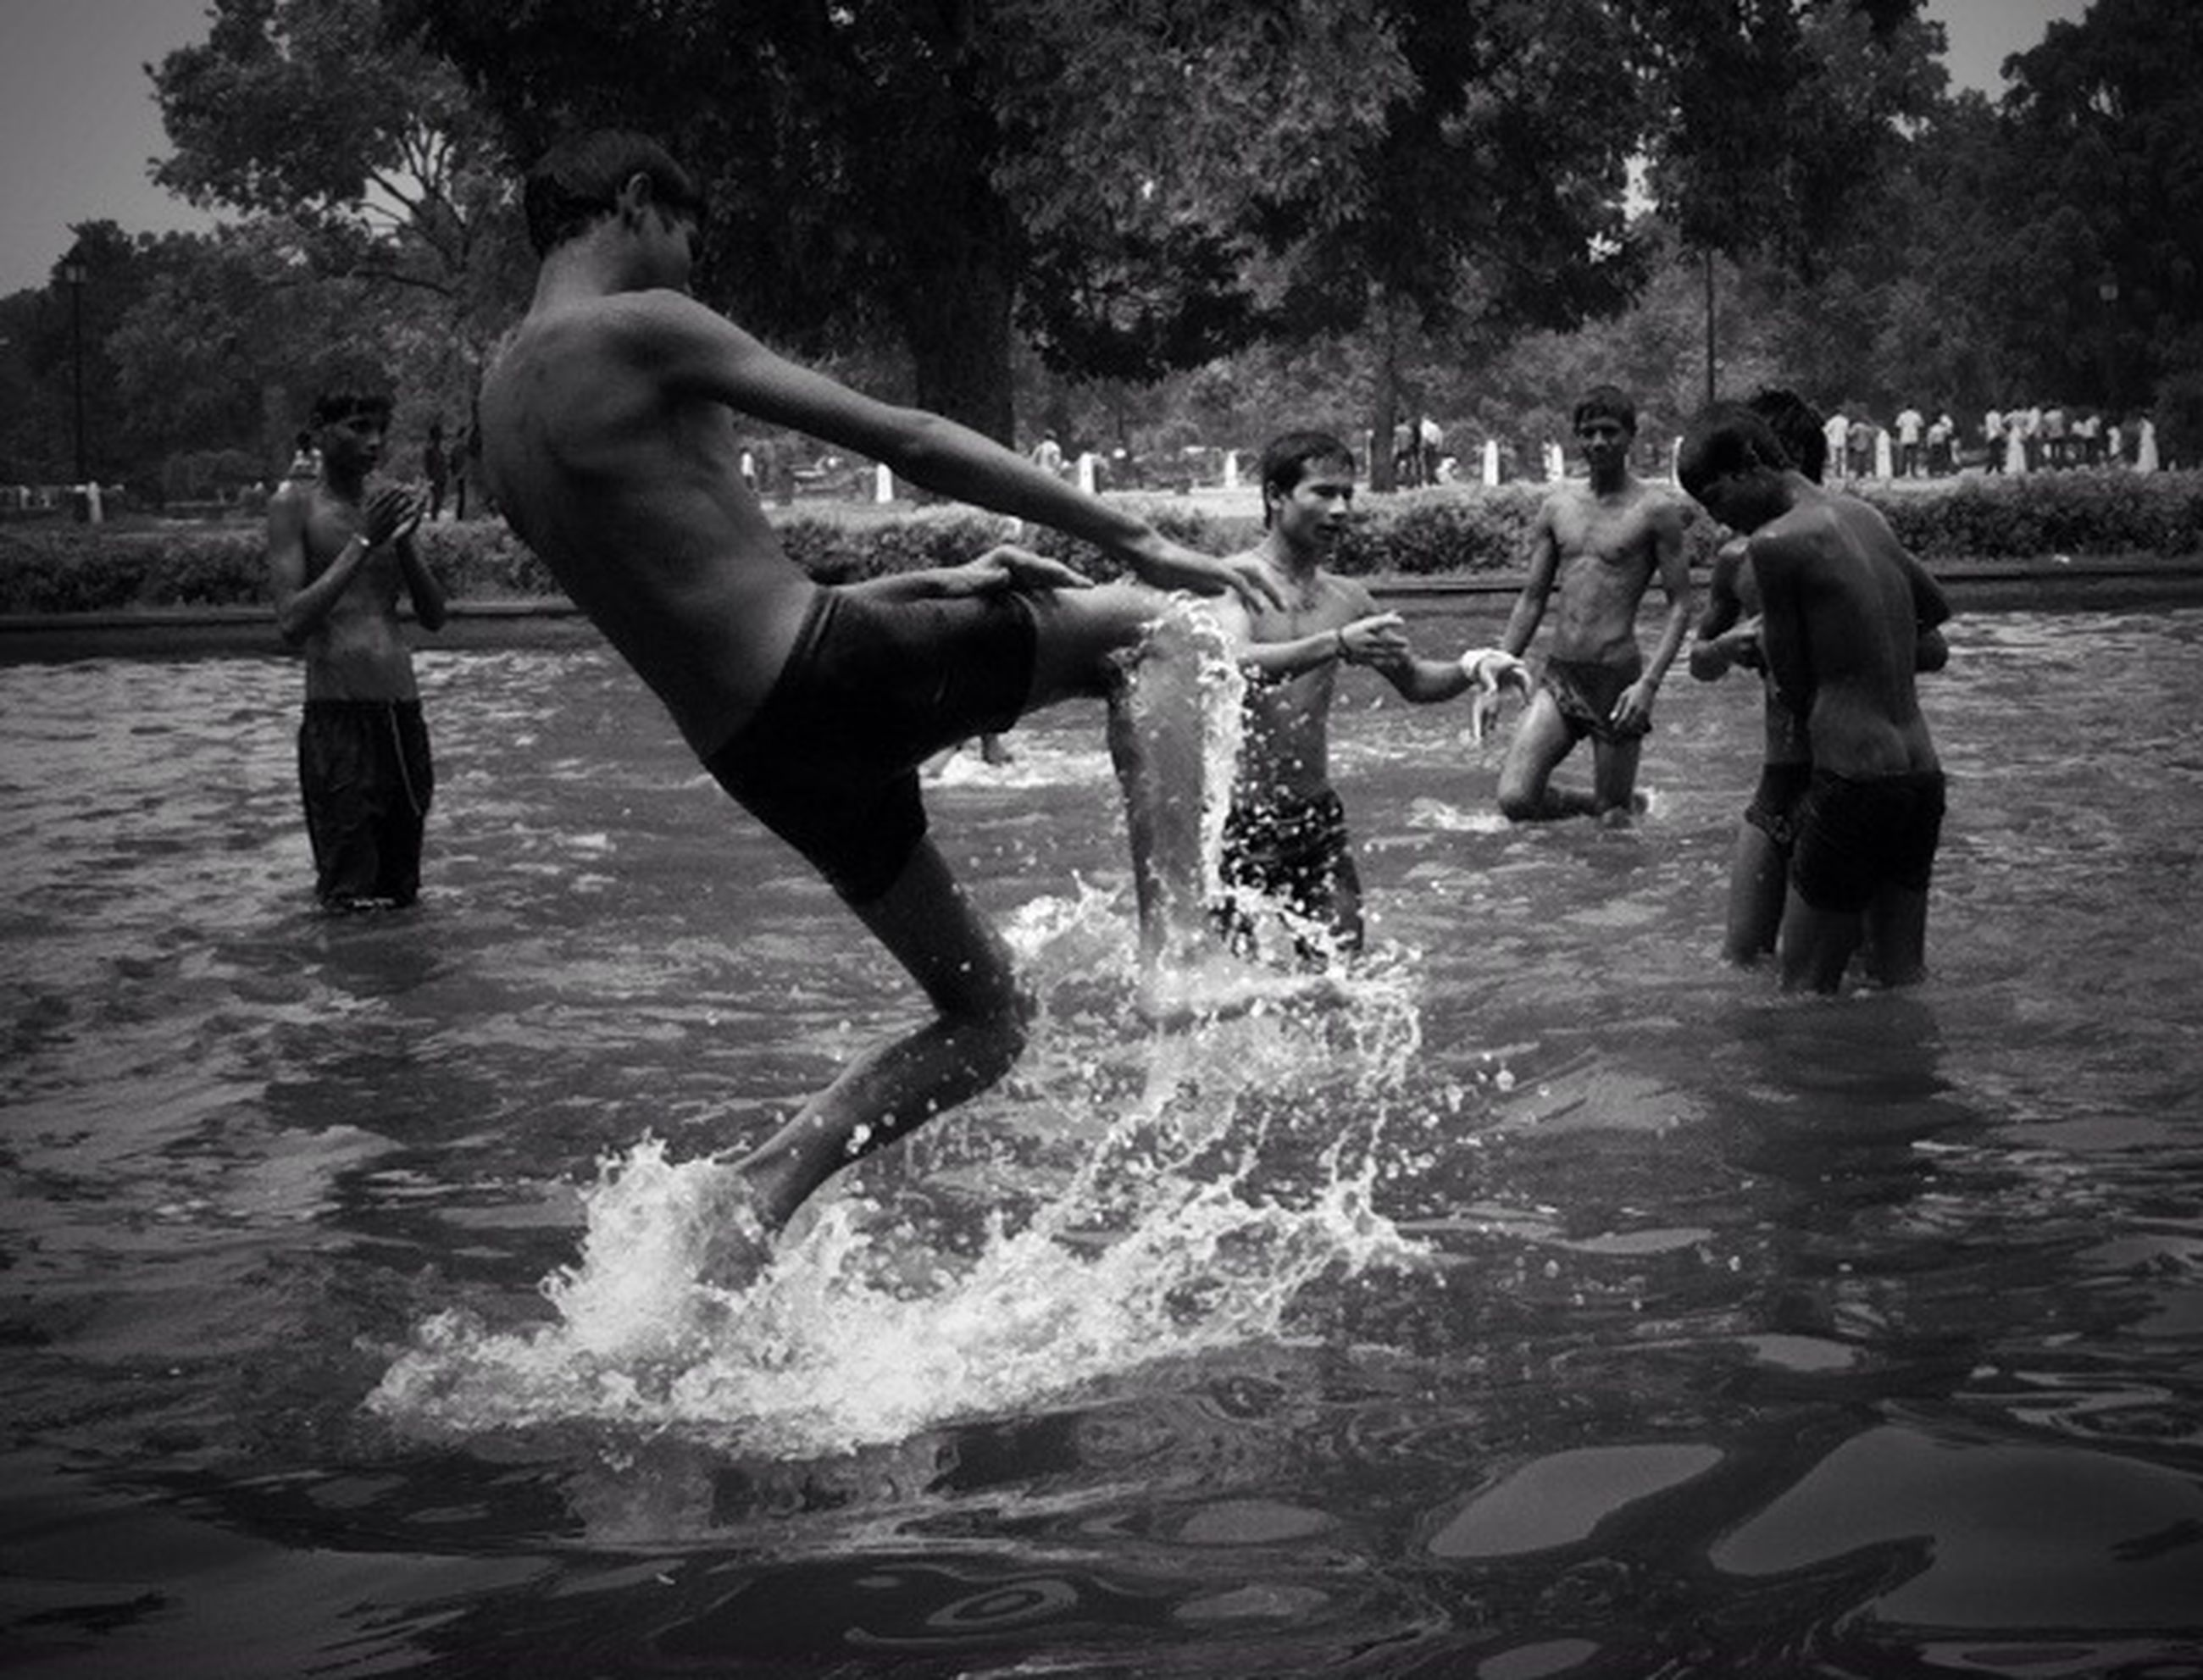 water, lifestyles, men, leisure activity, motion, enjoyment, tree, splashing, fun, full length, person, playing, large group of people, boys, togetherness, fountain, outdoors, jumping, day